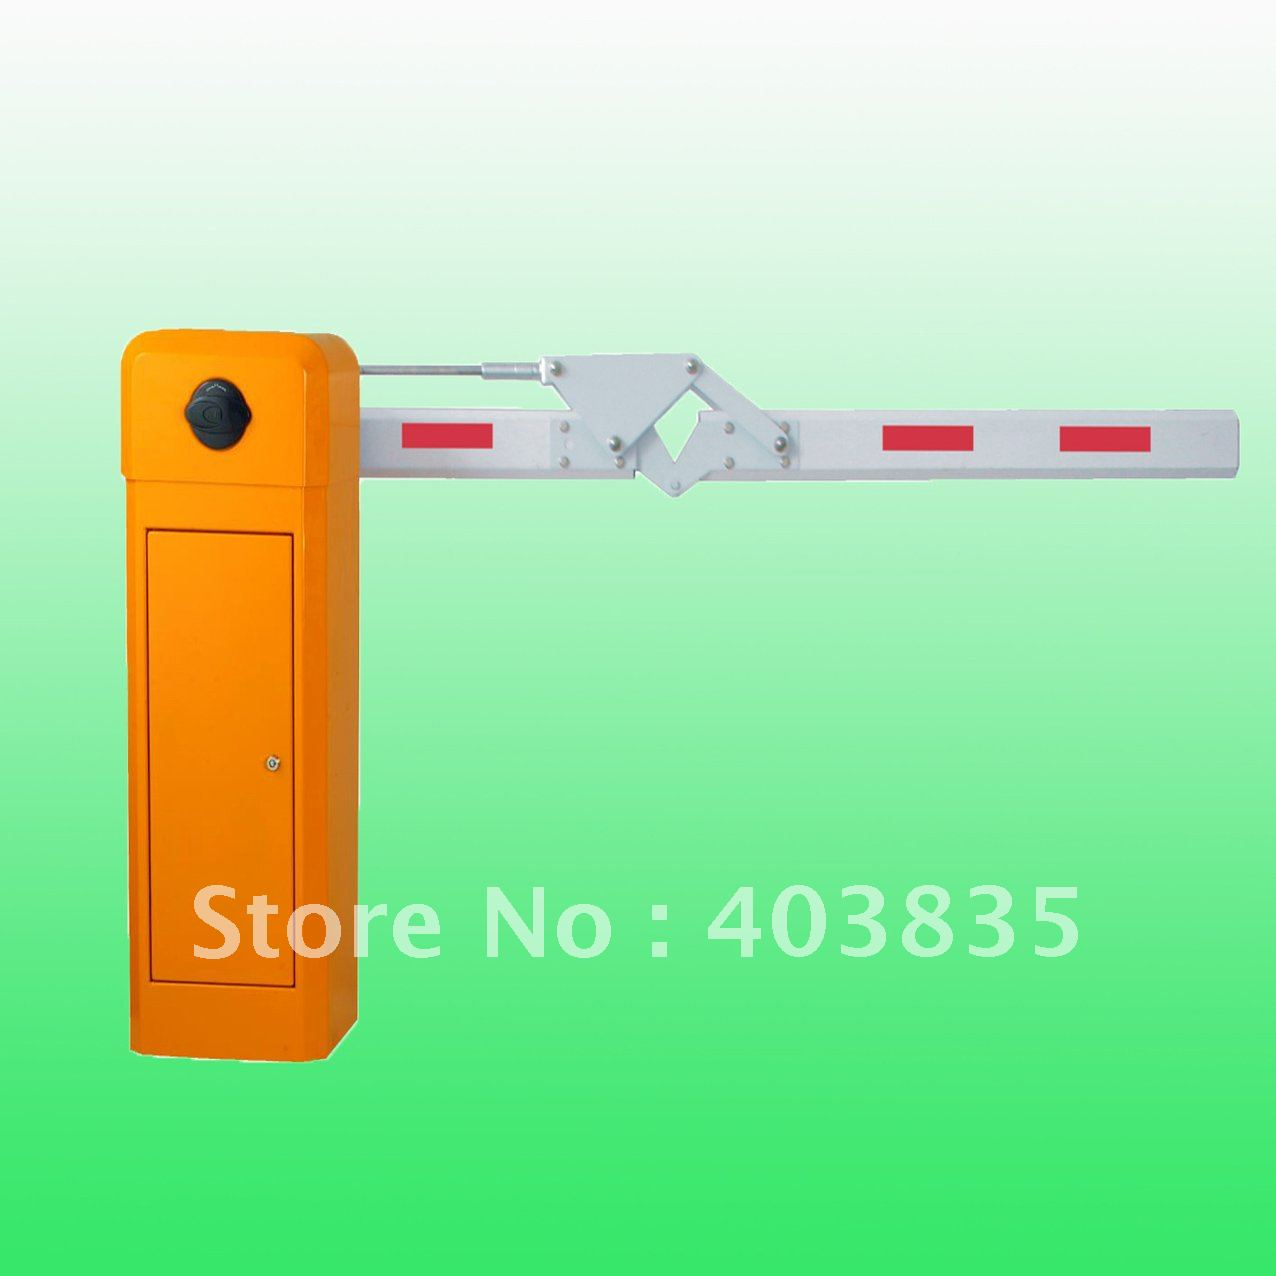 180 Degree Barrier Gate, Folding boom barrier gate for underground Parking System 3S High quality machinery цена